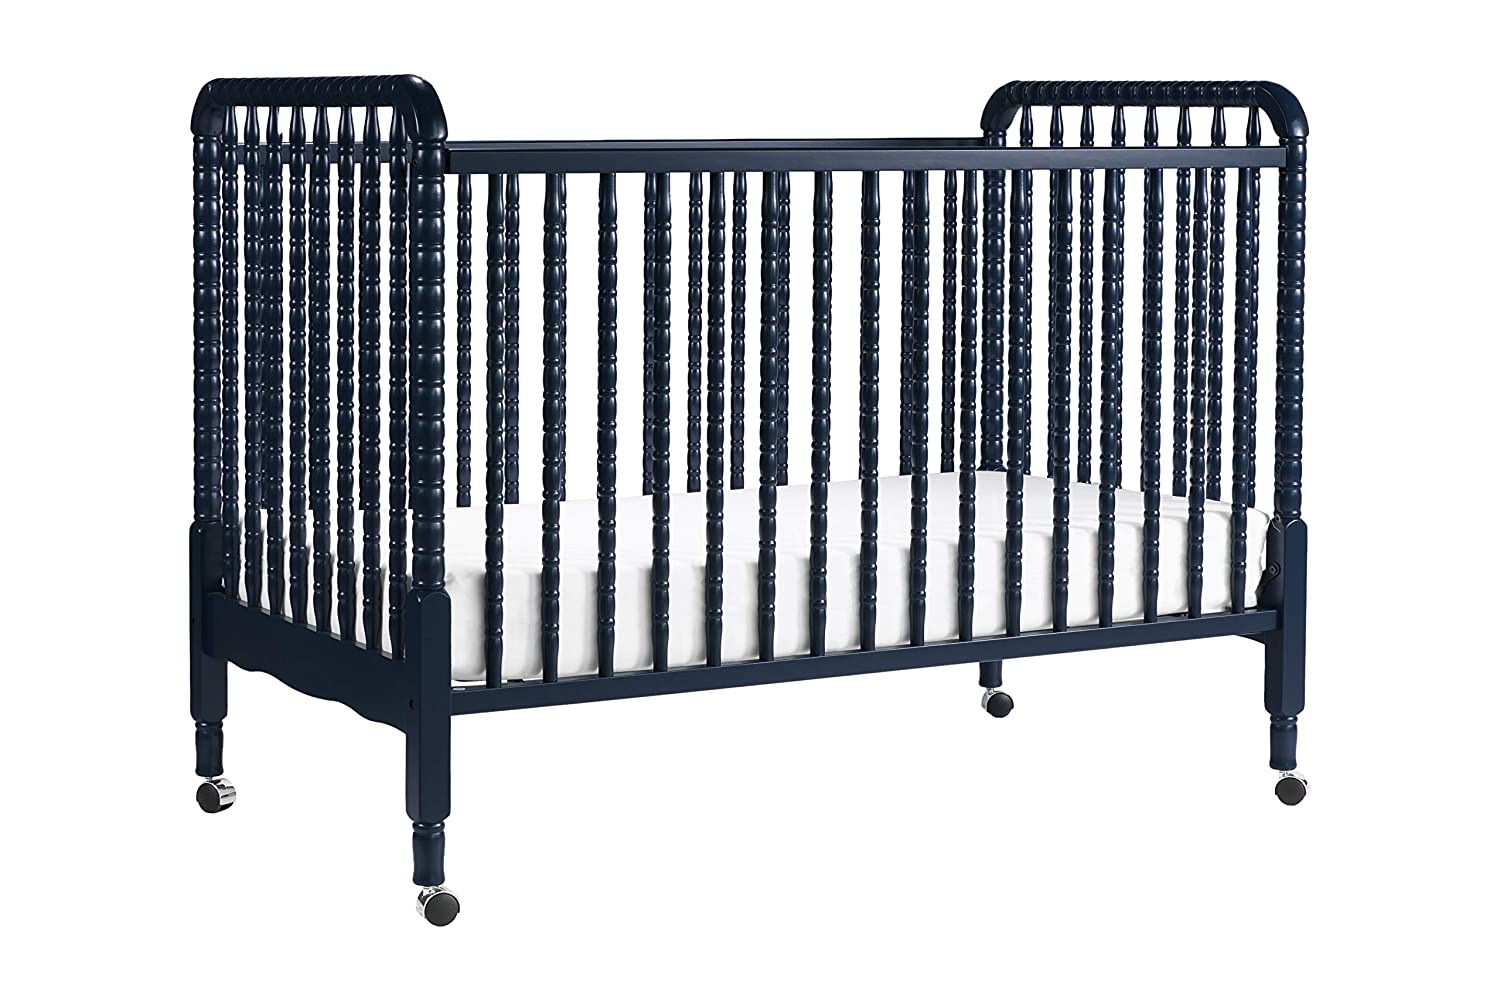 w/ Toddler Bed Conversion Kit in Navy Blue Finish